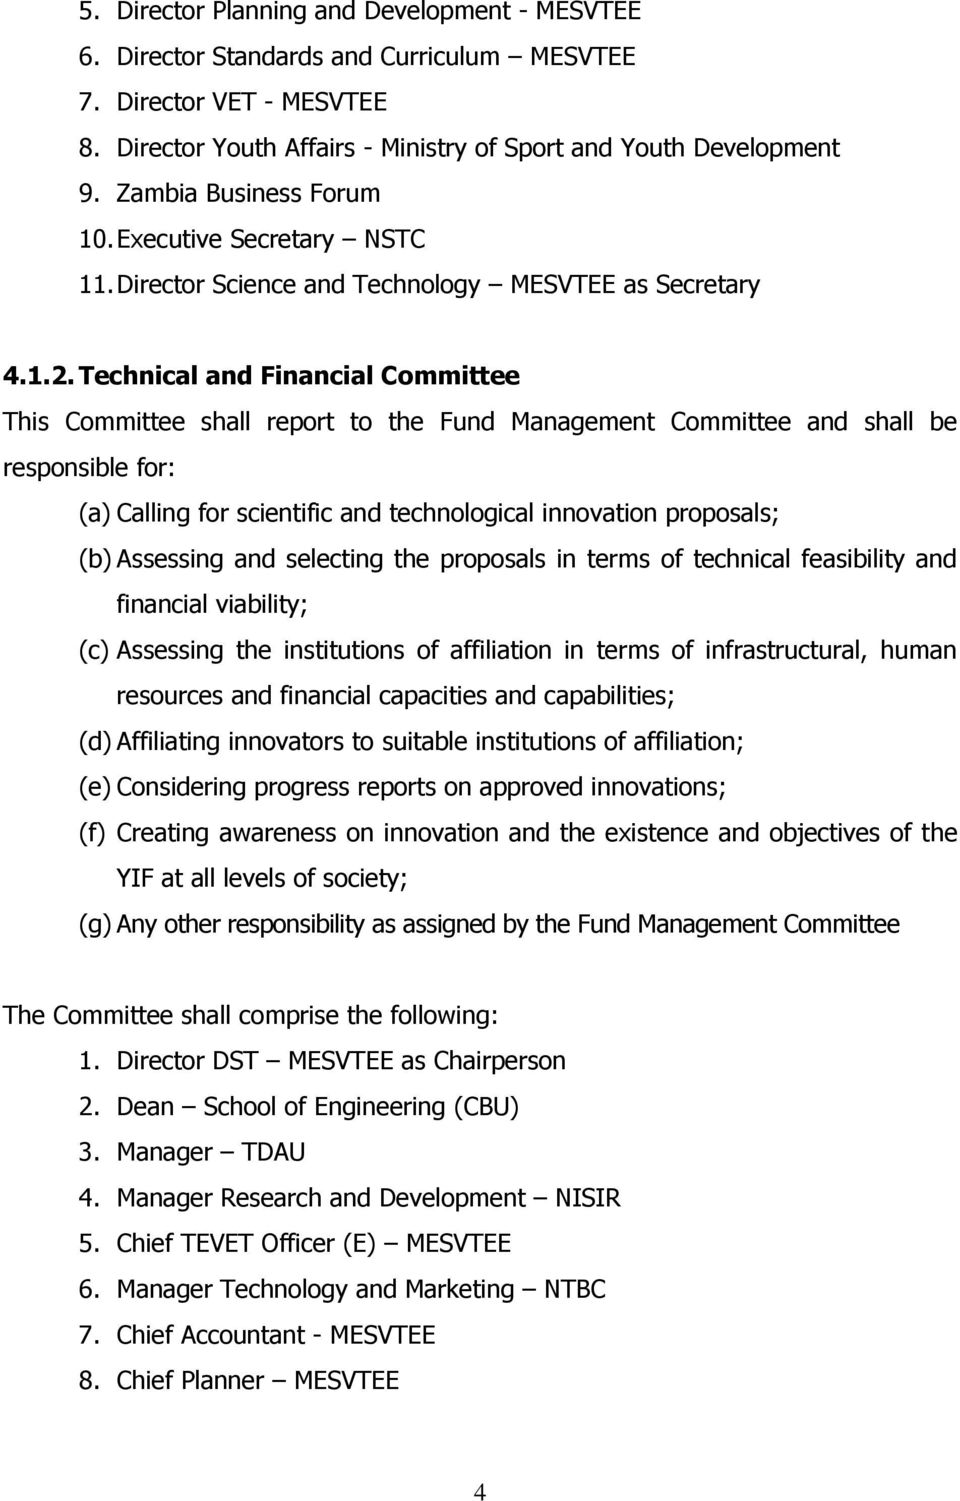 Technical and Financial Committee This Committee shall report to the Fund Management Committee and shall be responsible for: (a) Calling for scientific and technological innovation proposals; (b)